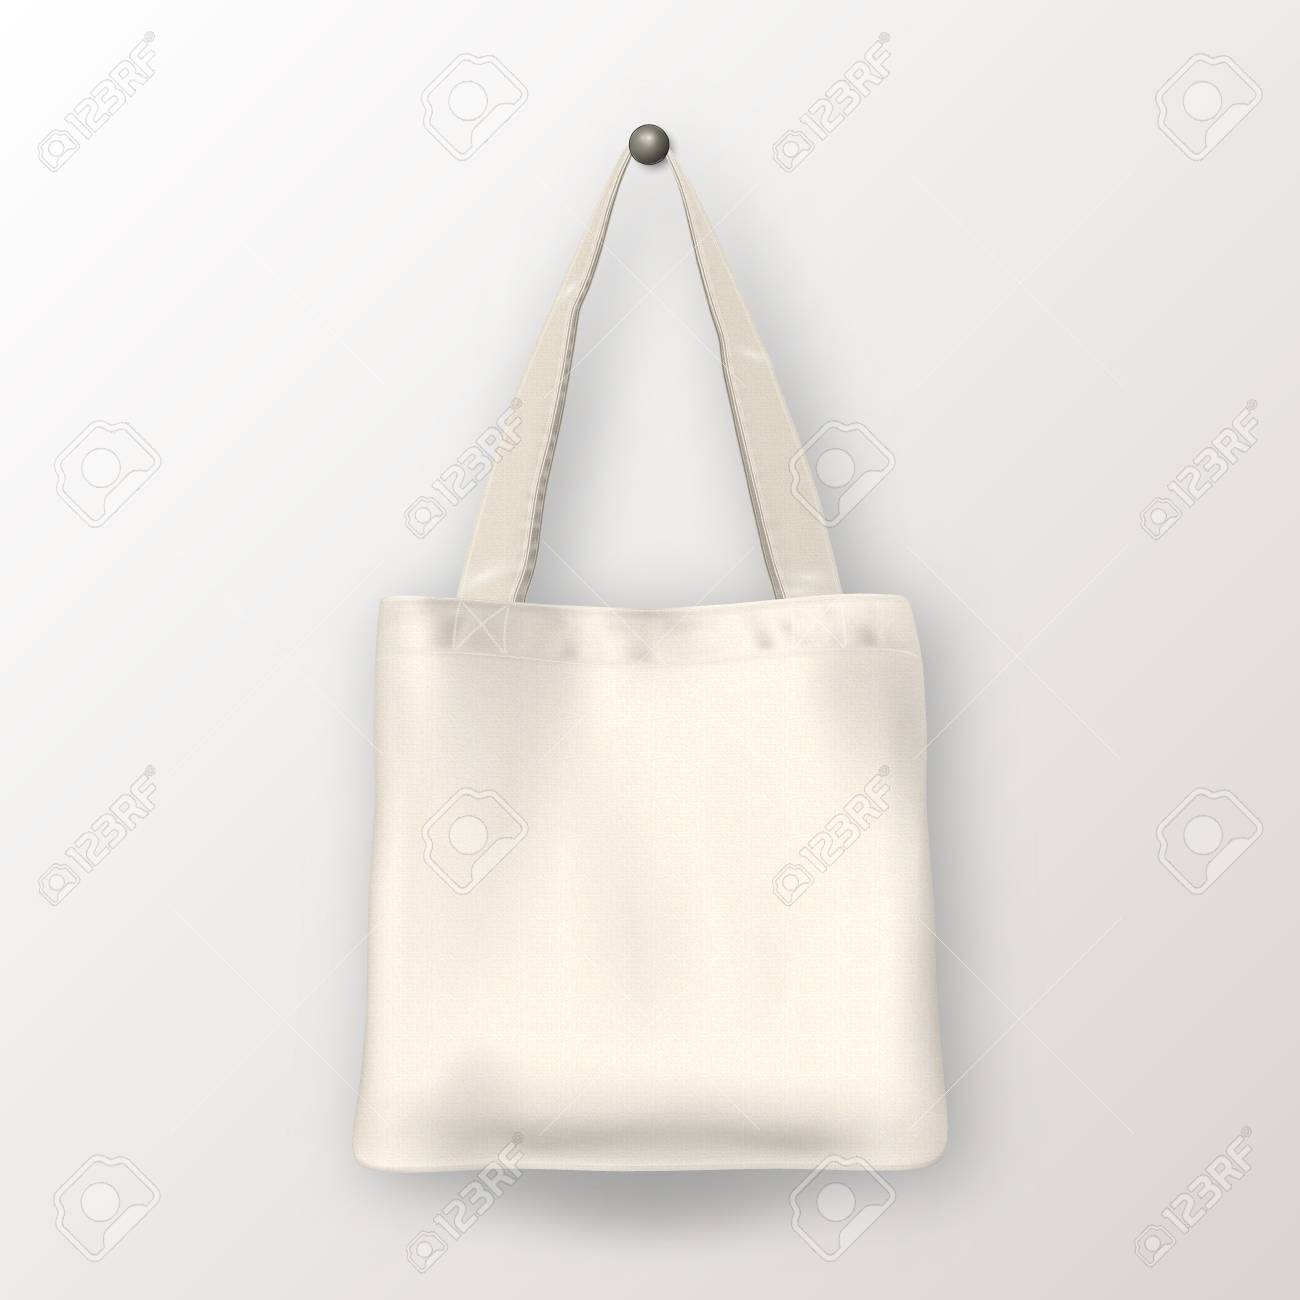 Realistic Vector White Empty Textile Tote Bag Closeup Isolated